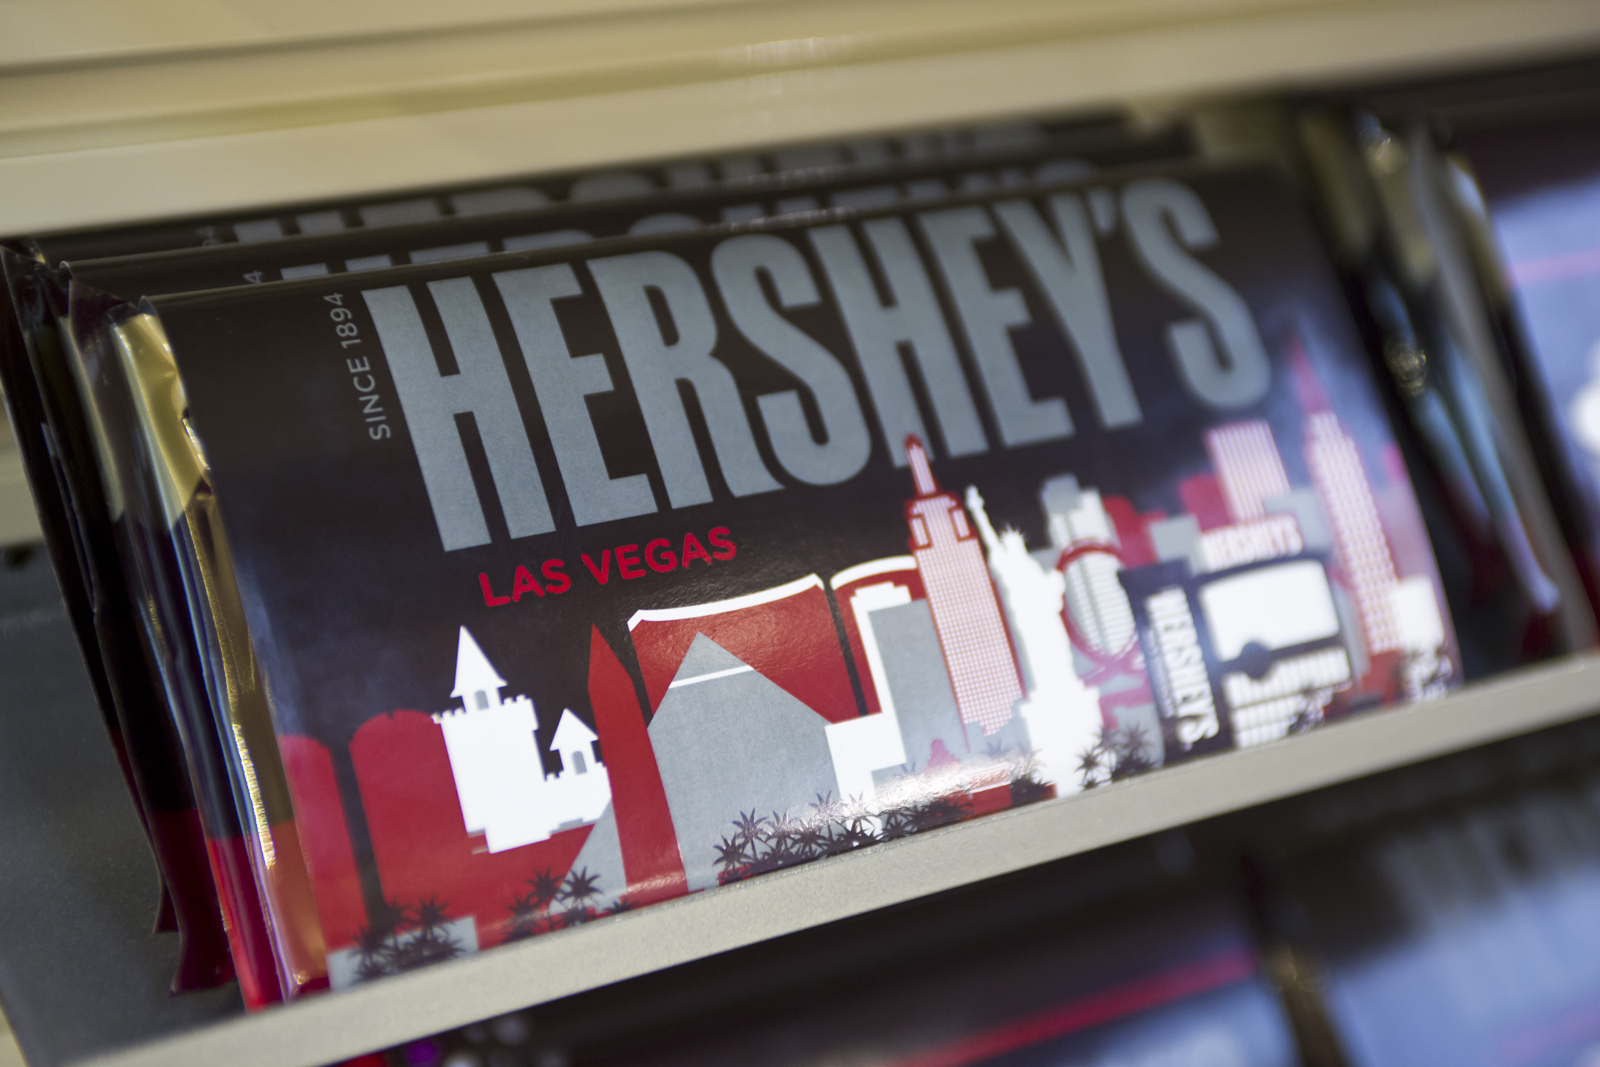 Hershey's Chocolate World, photo courtesy of New York - New York